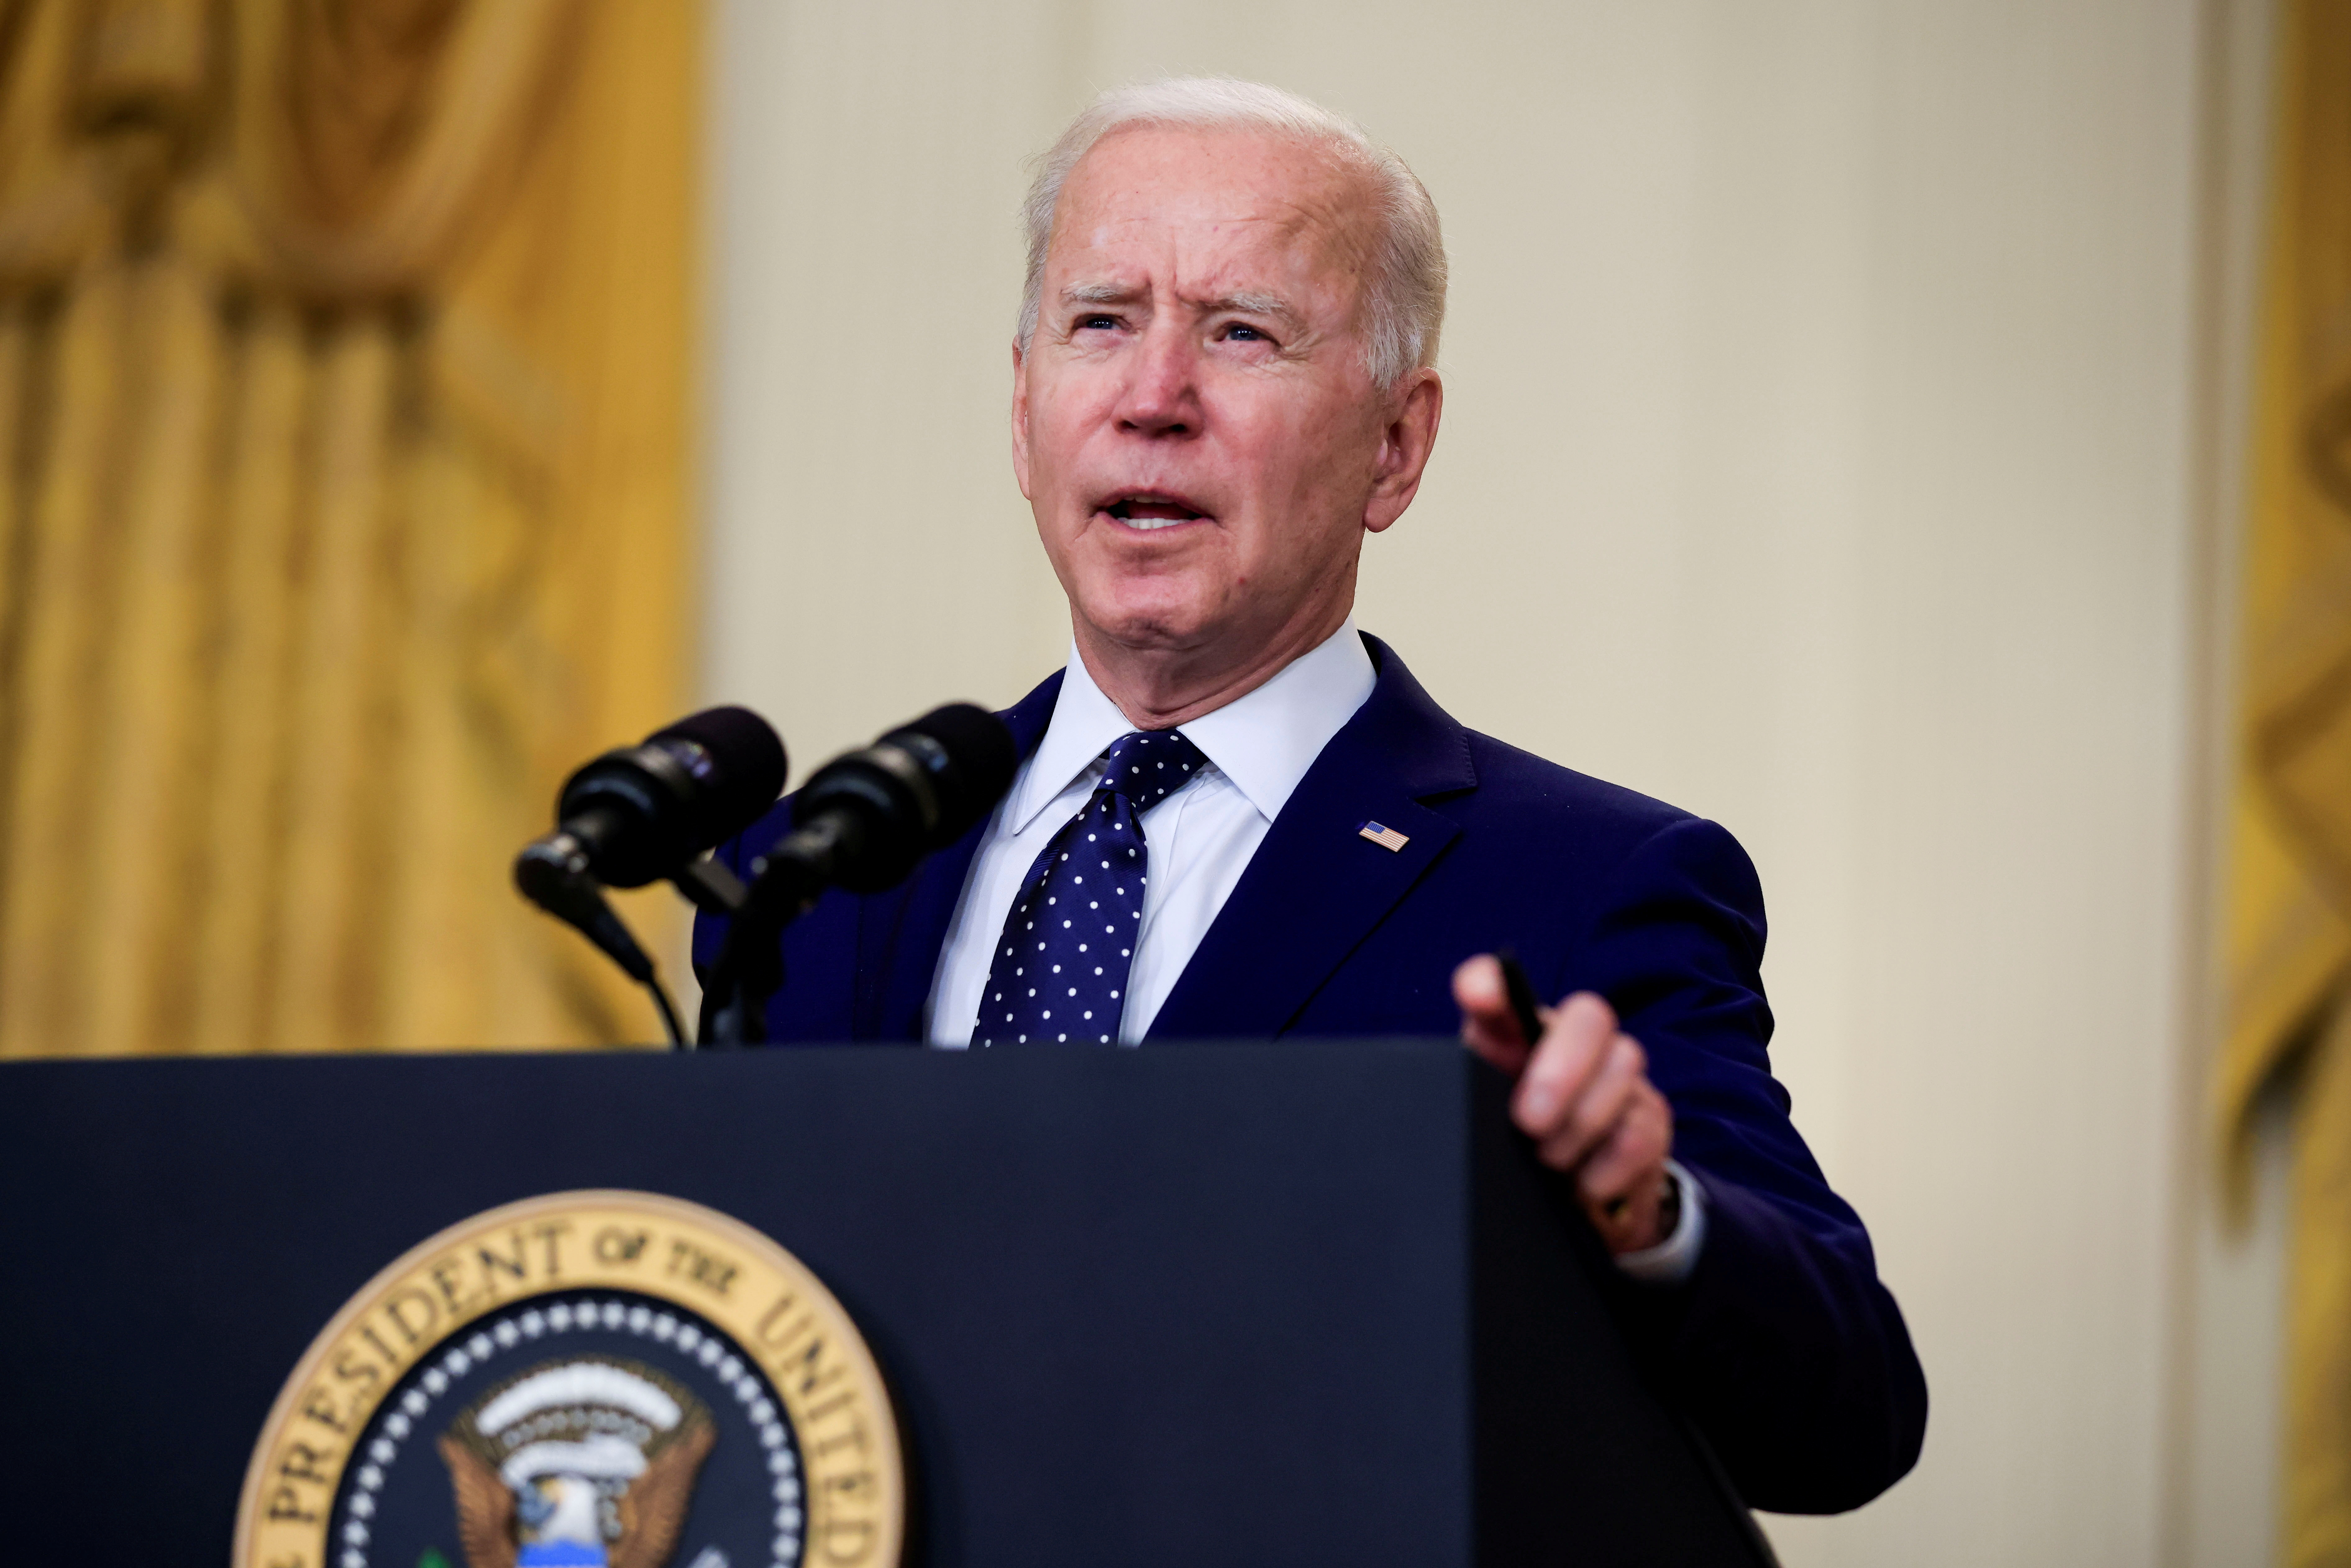 reuters.com - Power companies urge Biden to implement policies to cut emissions 80% by 2030